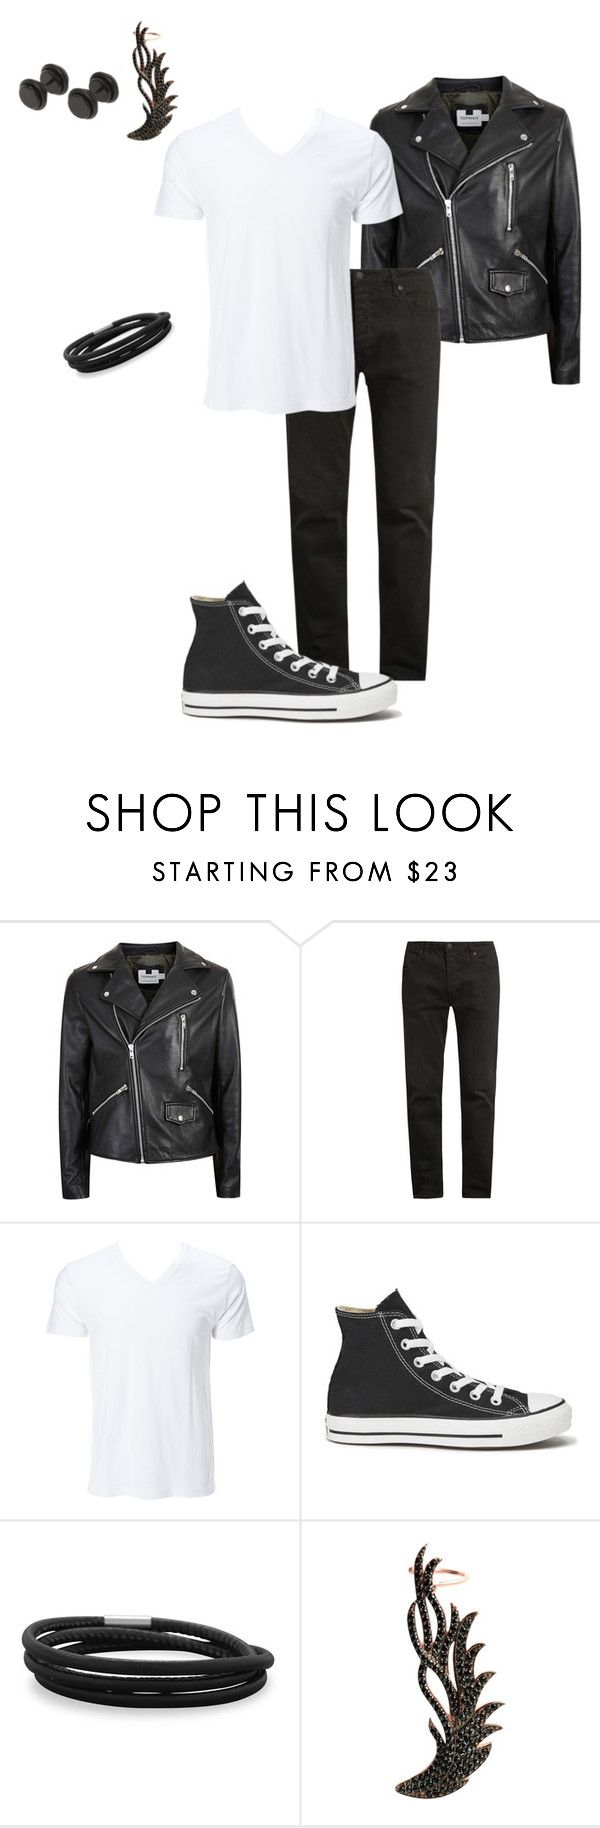 """Bill's Set for Jen's Rockabilly Ice Cream Birthday Party"" by thesassystewart on Polyvore featuring Topman, Neuw denim, Converse, BillyTheTree, Wild Hearts, men's fashion and menswear"